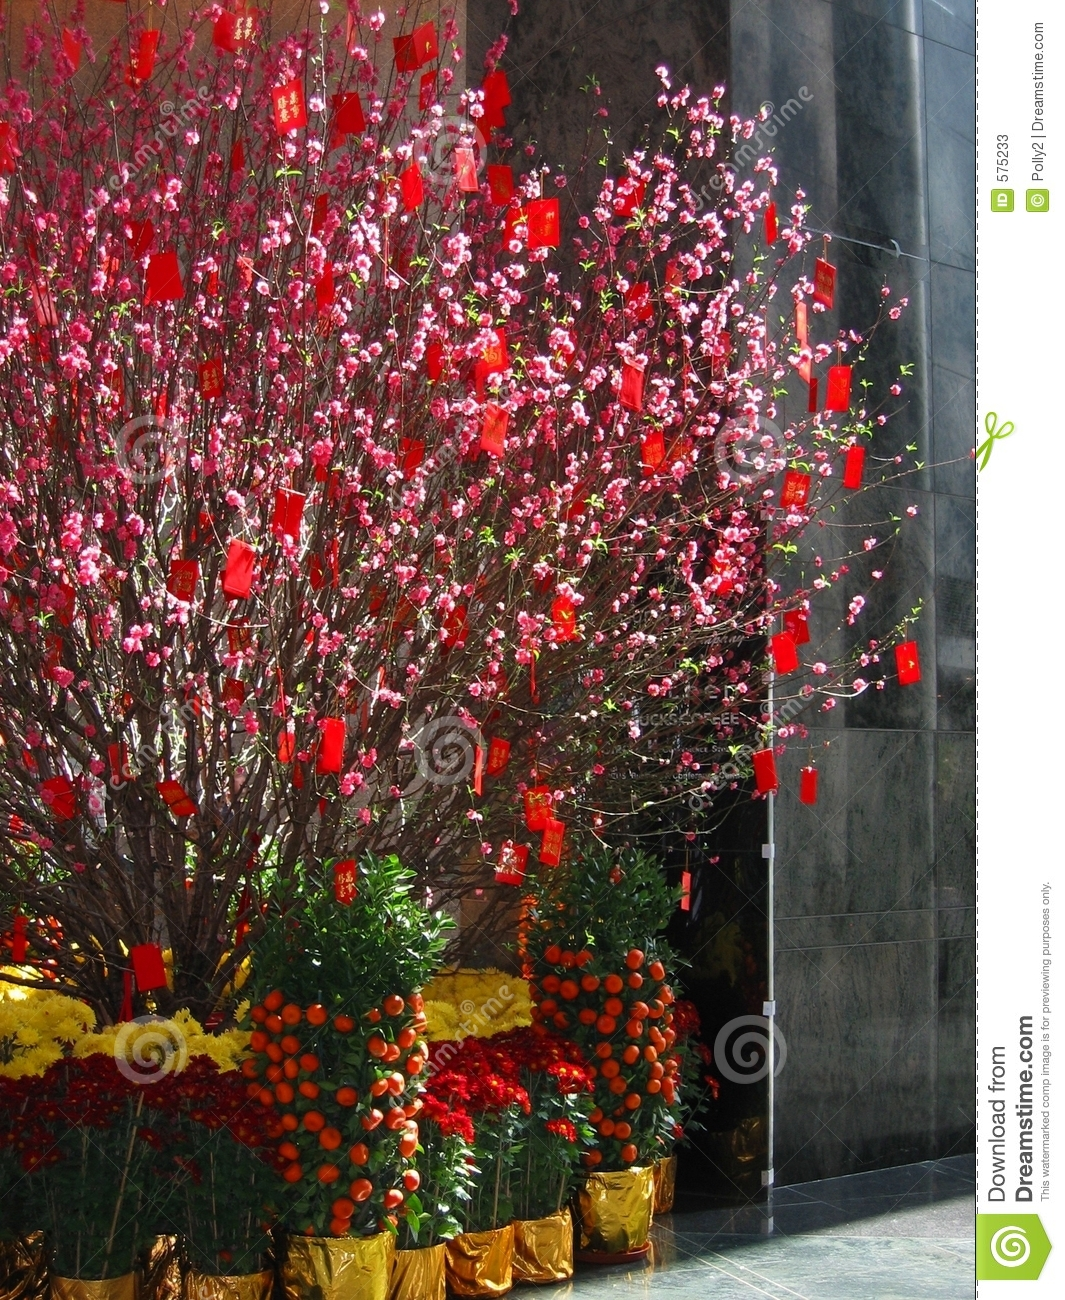 Lunar New Year Celebrations Come to a Colorful Close in China - Vogue